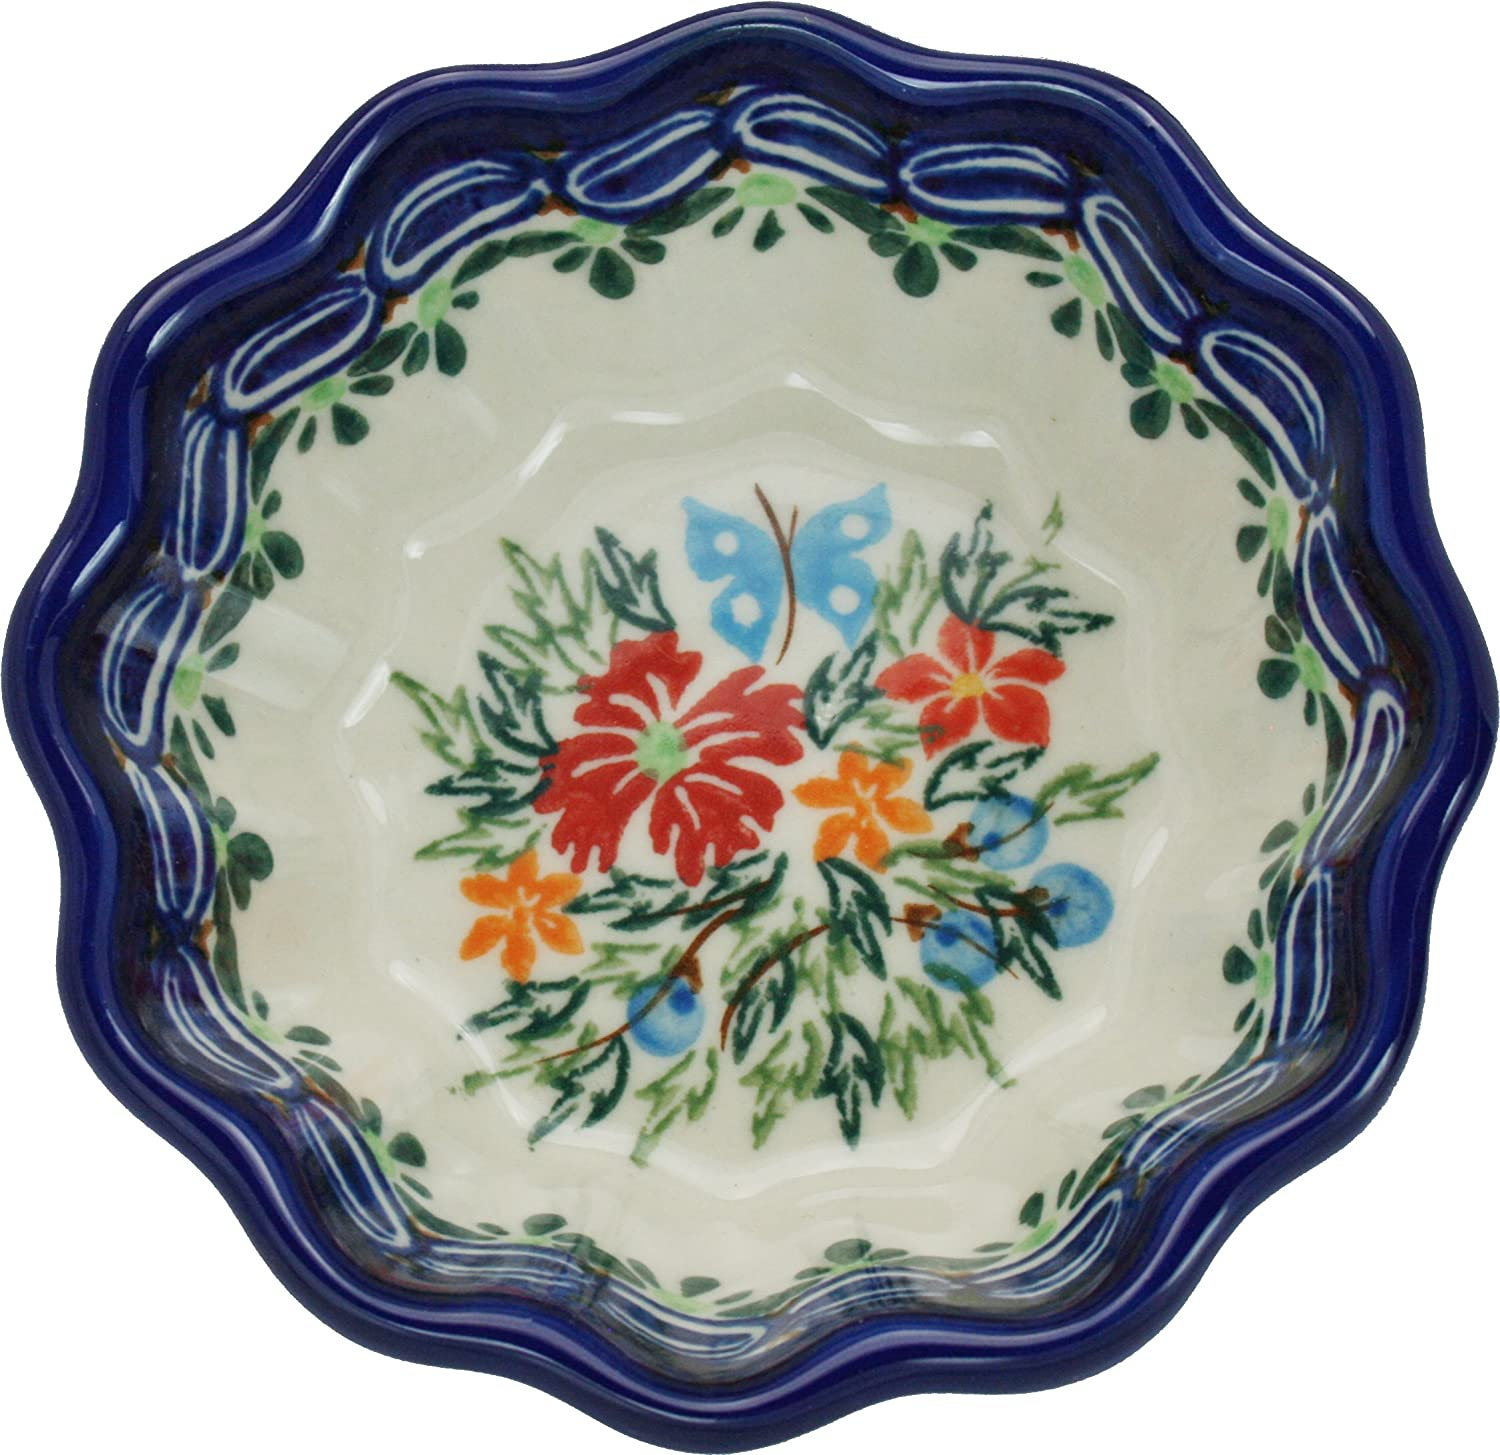 0432//238 1//2 Cup Polish Pottery Ceramika Boleslawiec Bowl Babka Small Royal Blue Patterns with Red Cornflower and Blue Butterflies Motif